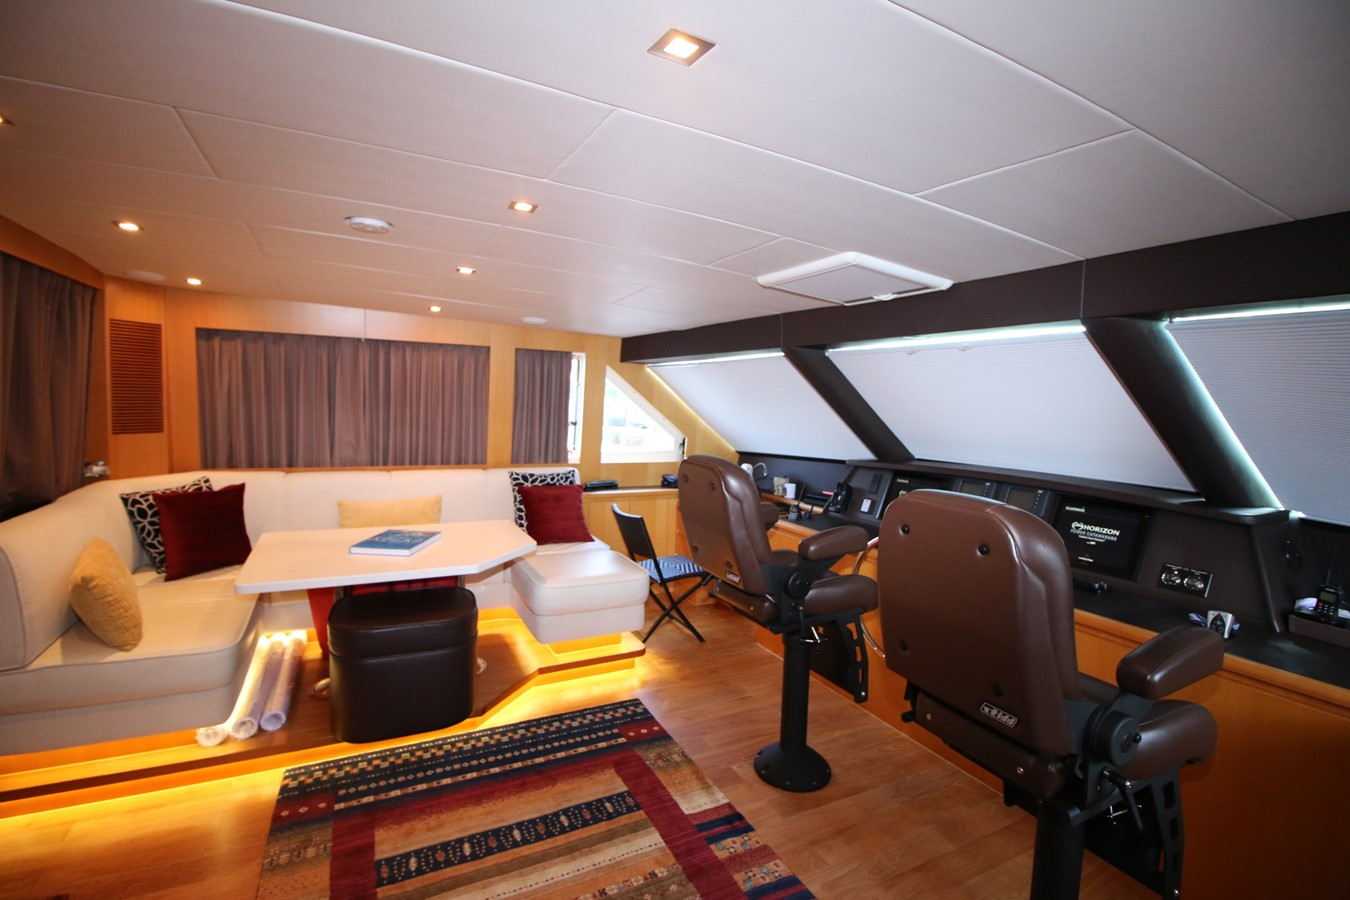 ENBLOSED BRIDGE 2014 HORIZON PC60 SKYLOUNGE Catamaran 2547250